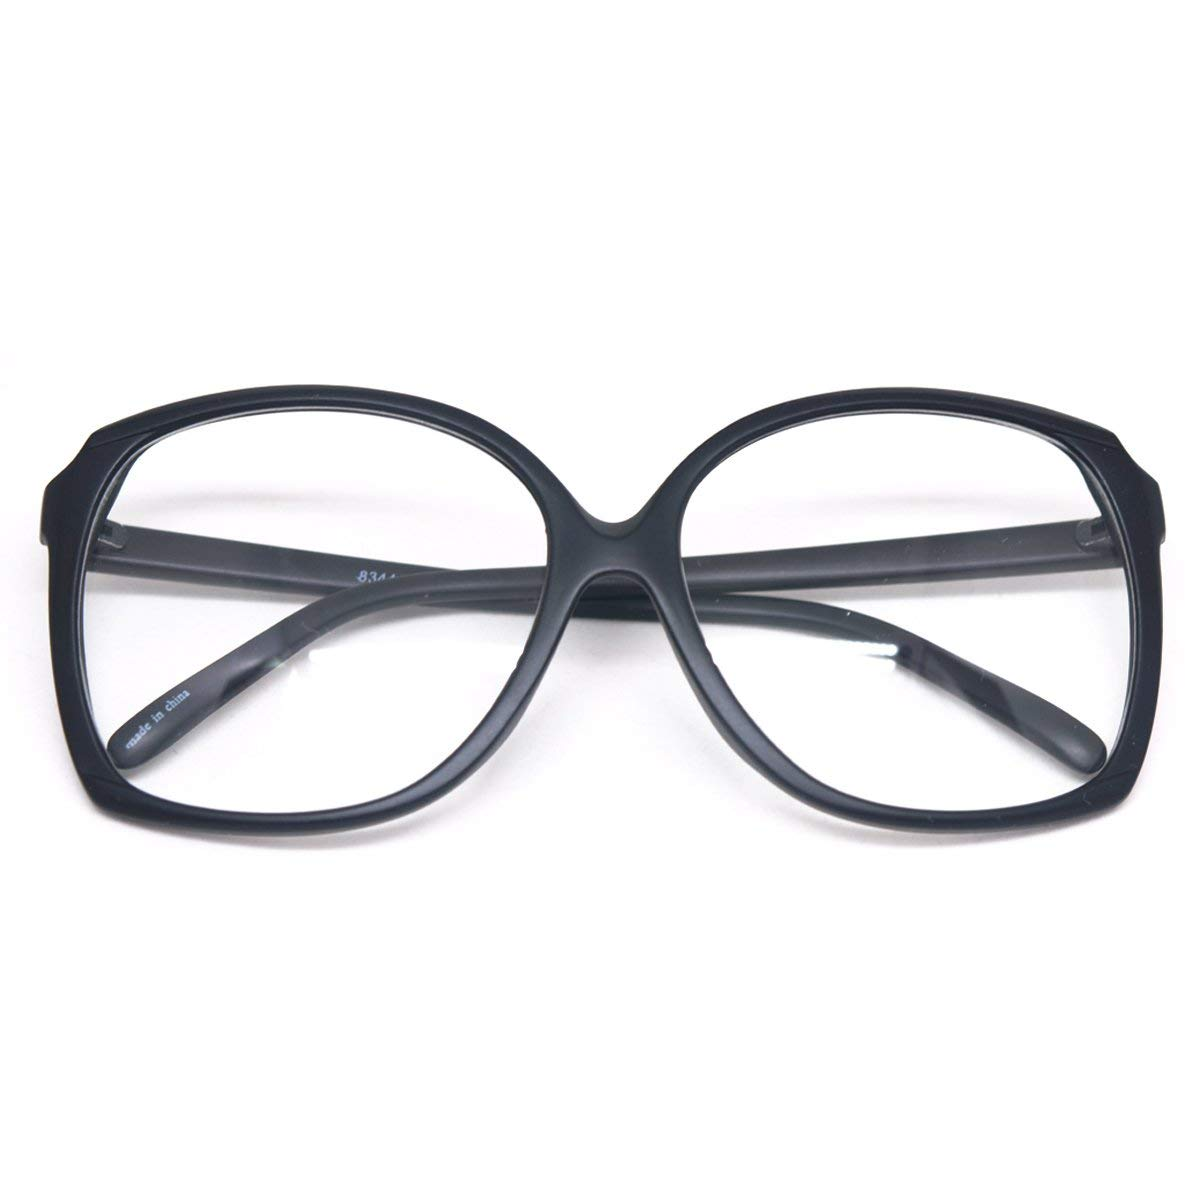 e626b4350b96 Get Quotations · Oversized Square Horn Rimmed Eyeglasses Classic Vintage  Inspired Geek Clear Lens